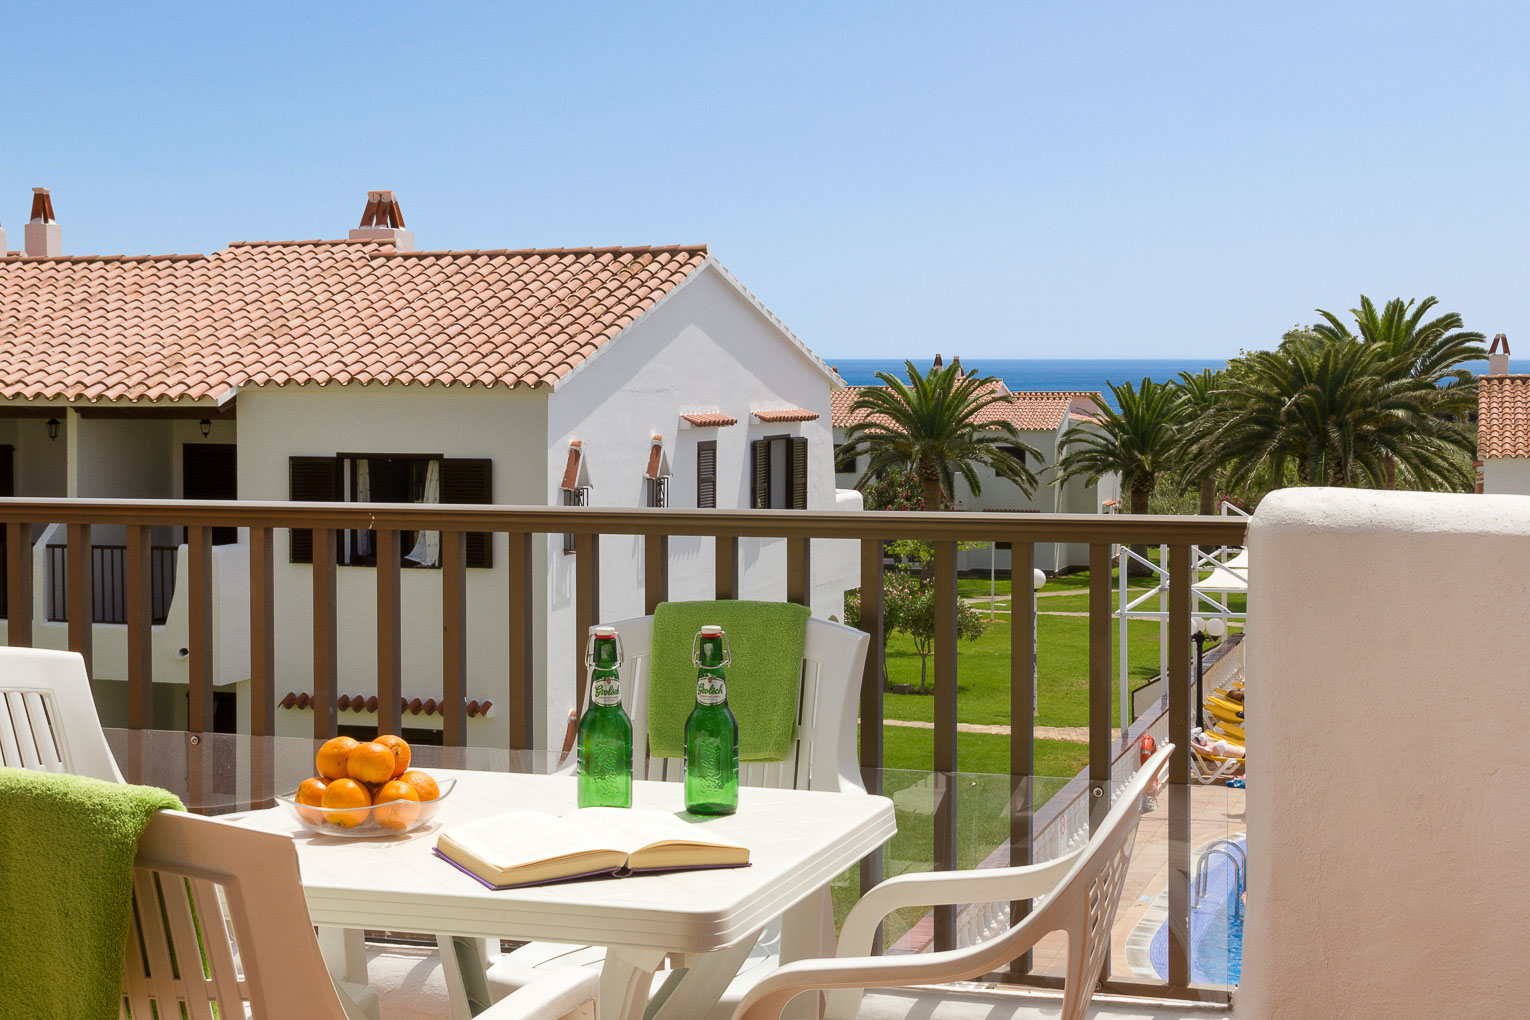 Son Bou Playa Apartments (2 bedroom) Picture 26